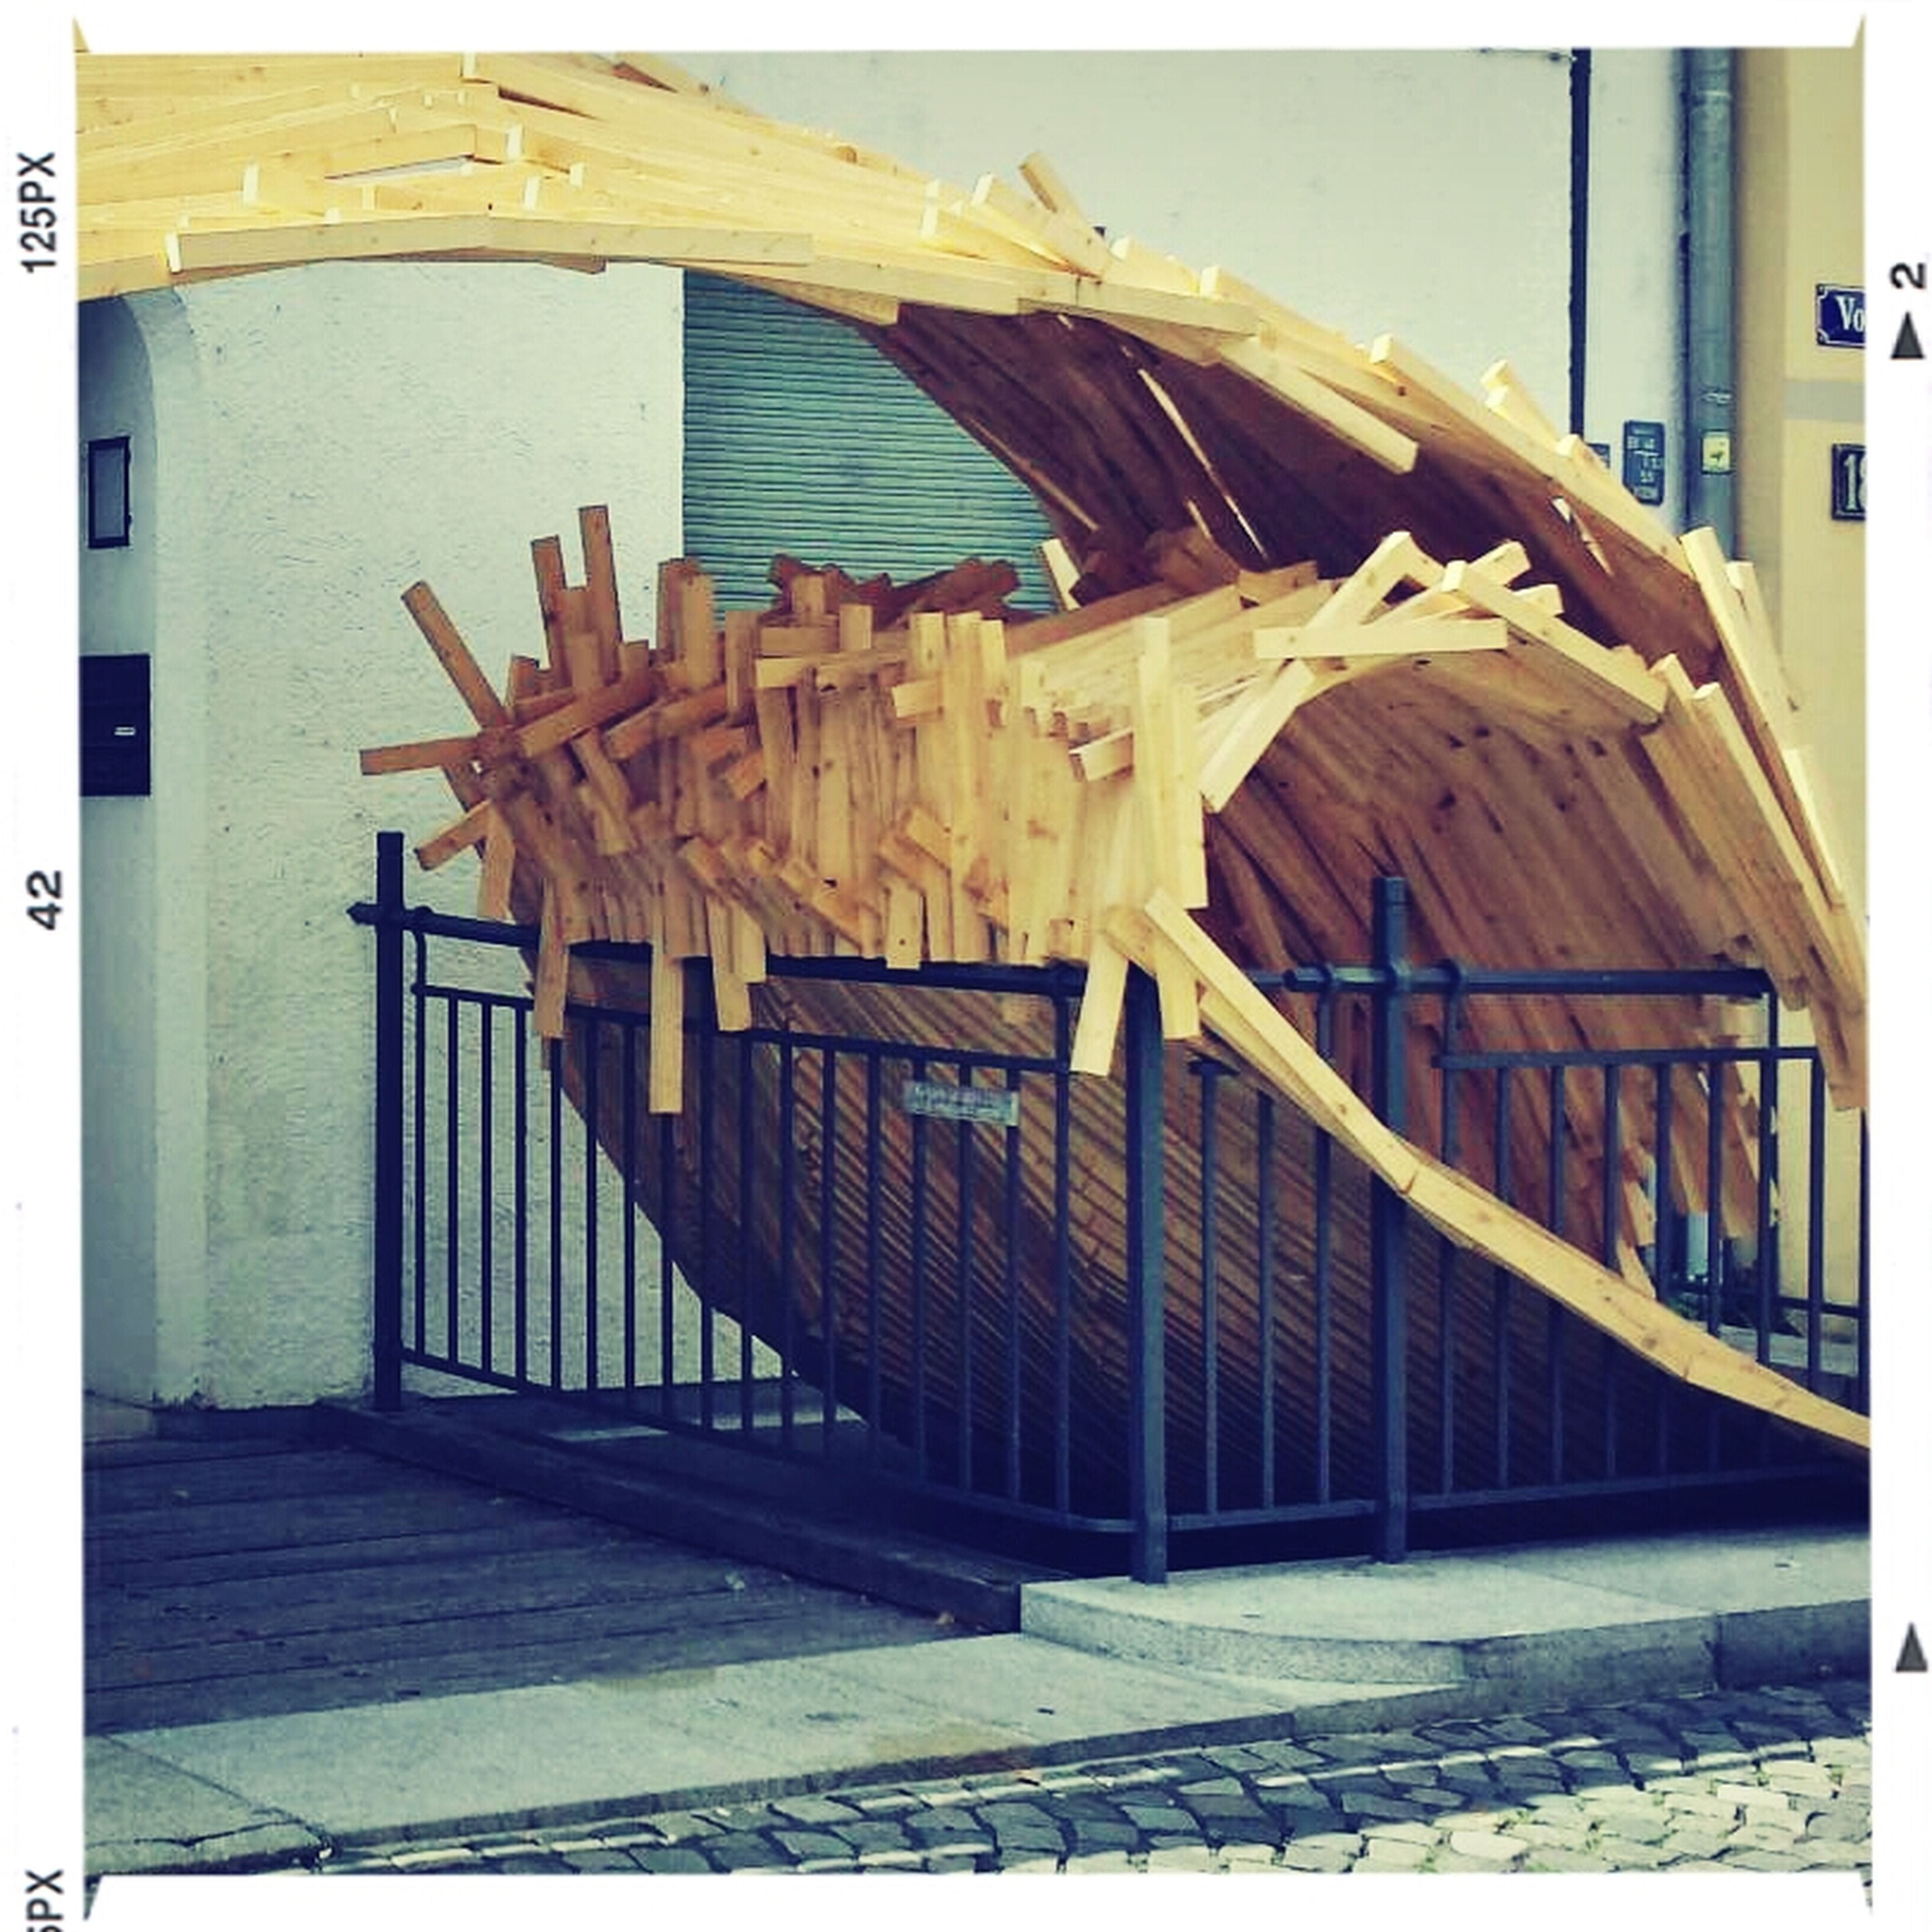 Surfs Up at the wooden wave in Augsburg